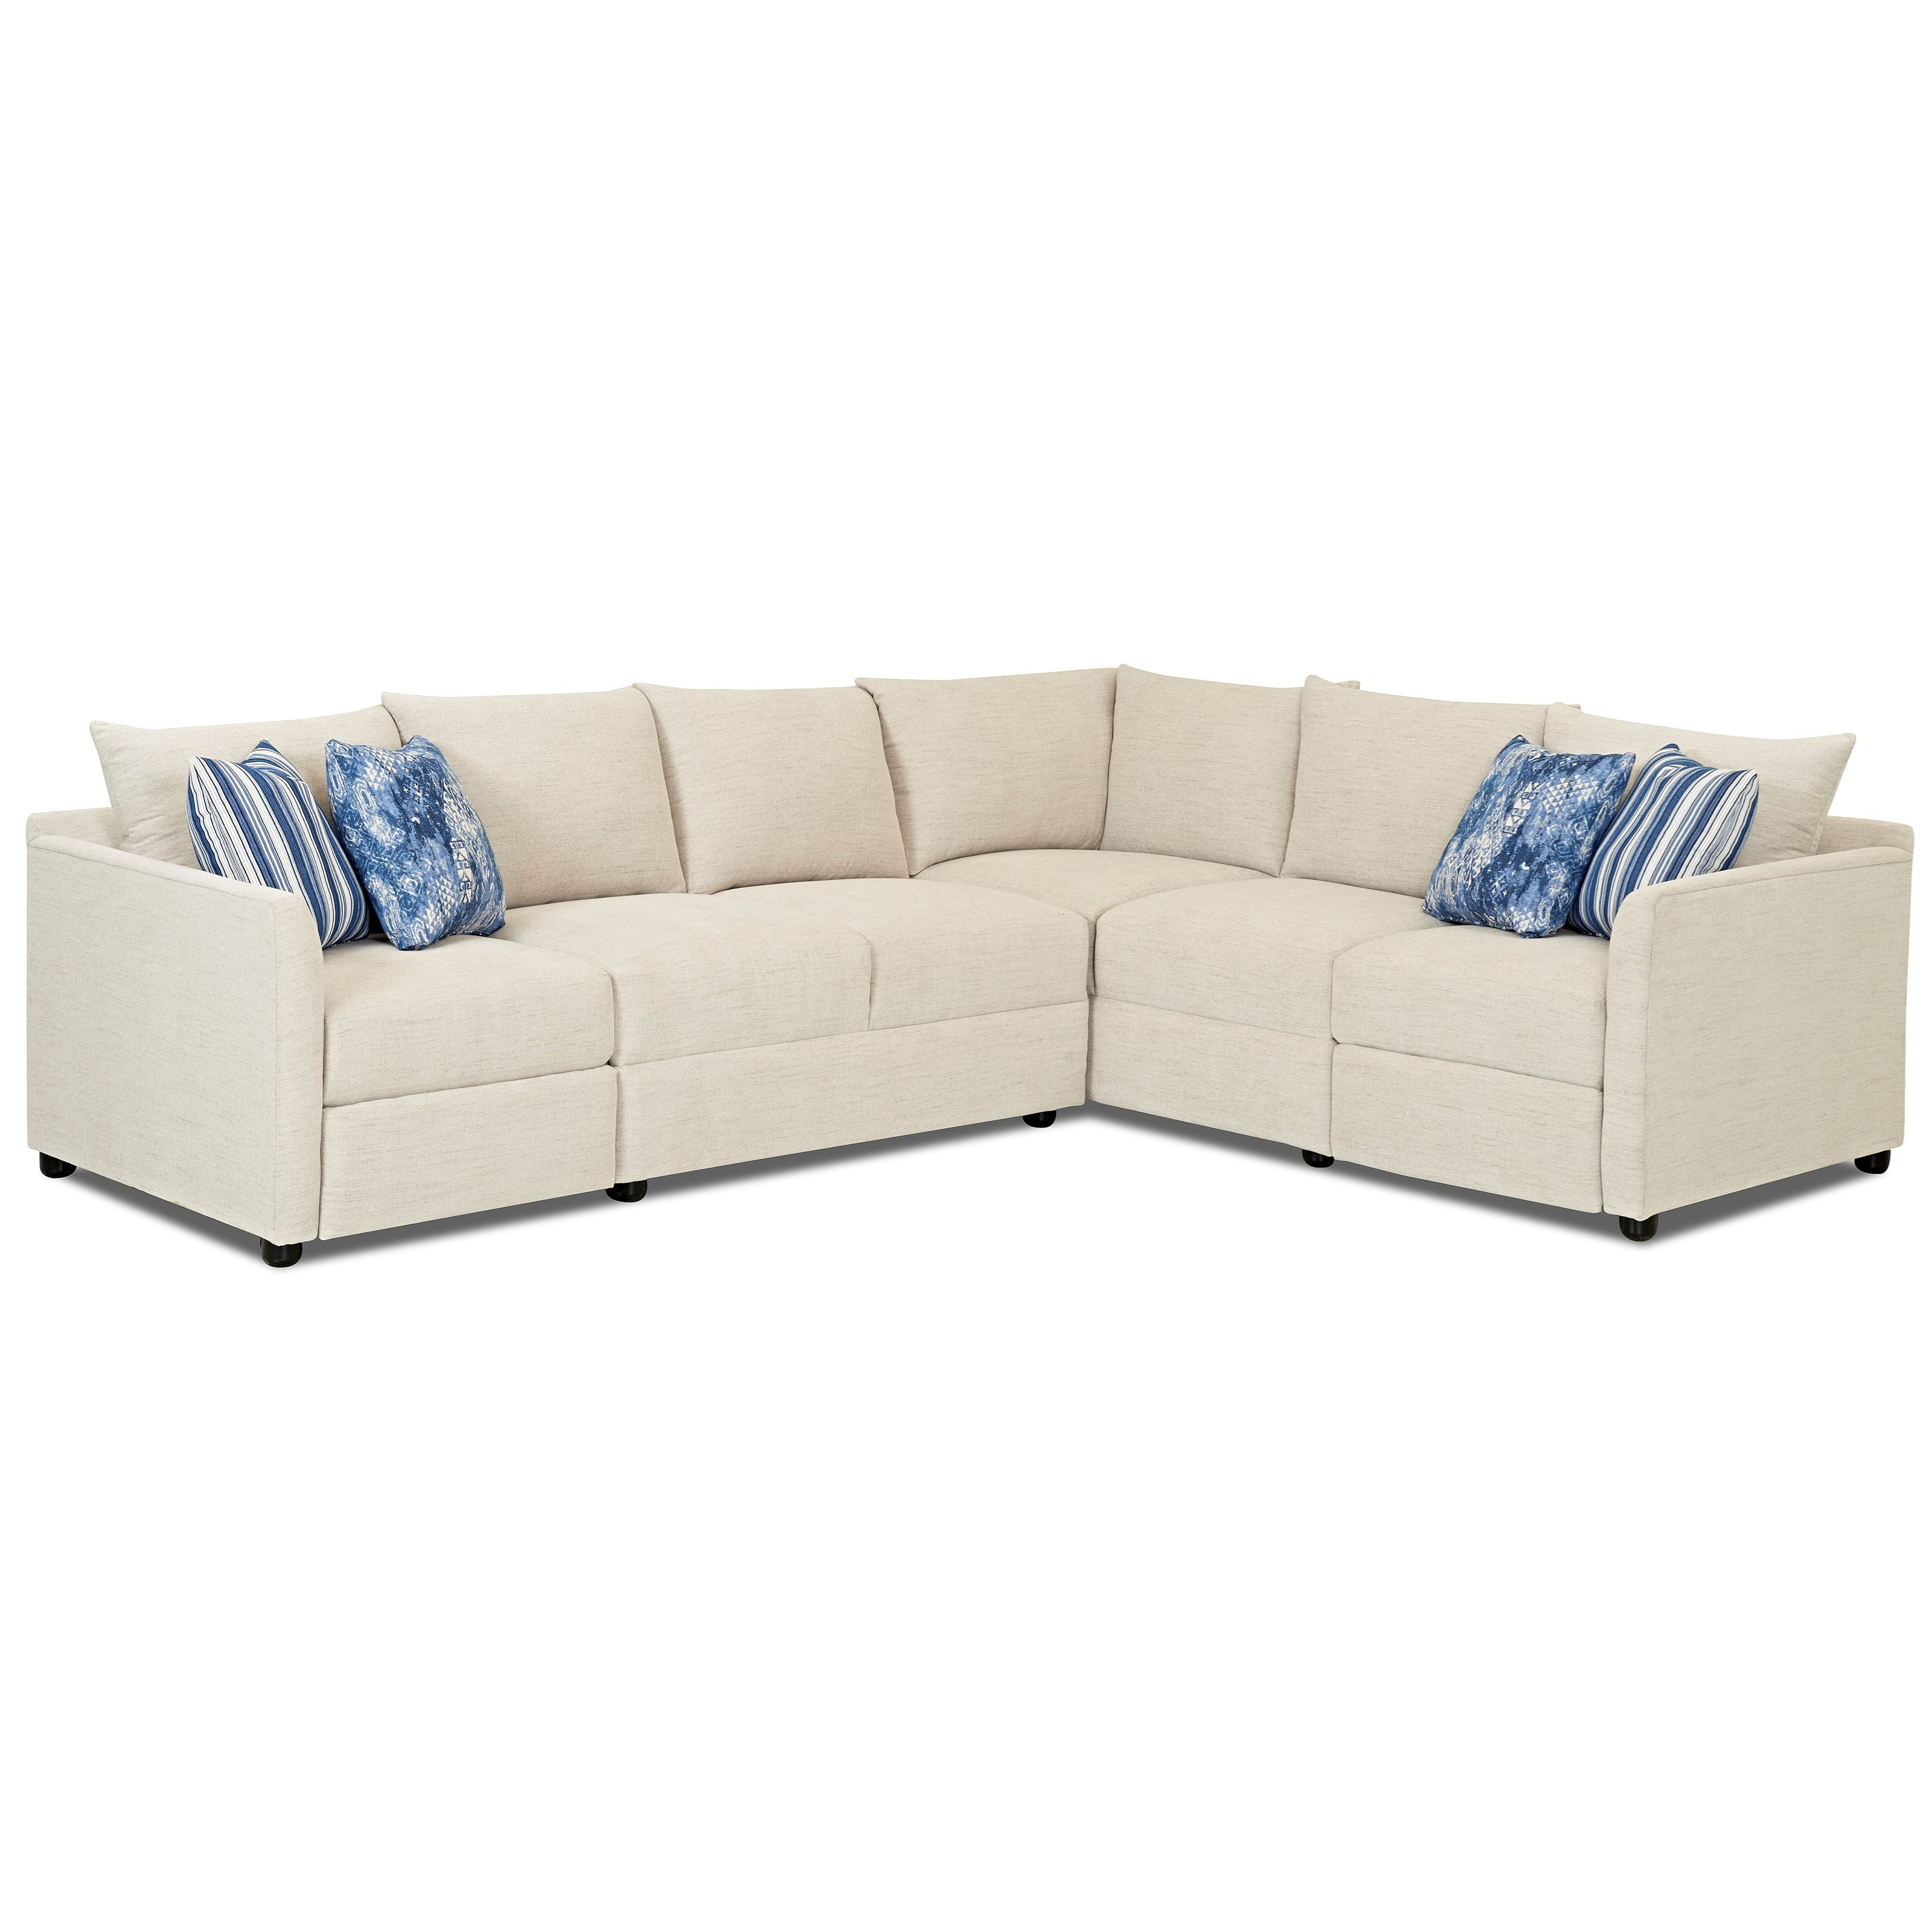 Atlanta 2 Pc Power Hybrid Reclining Sectional Sofa by Klaussner at Northeast Factory Direct